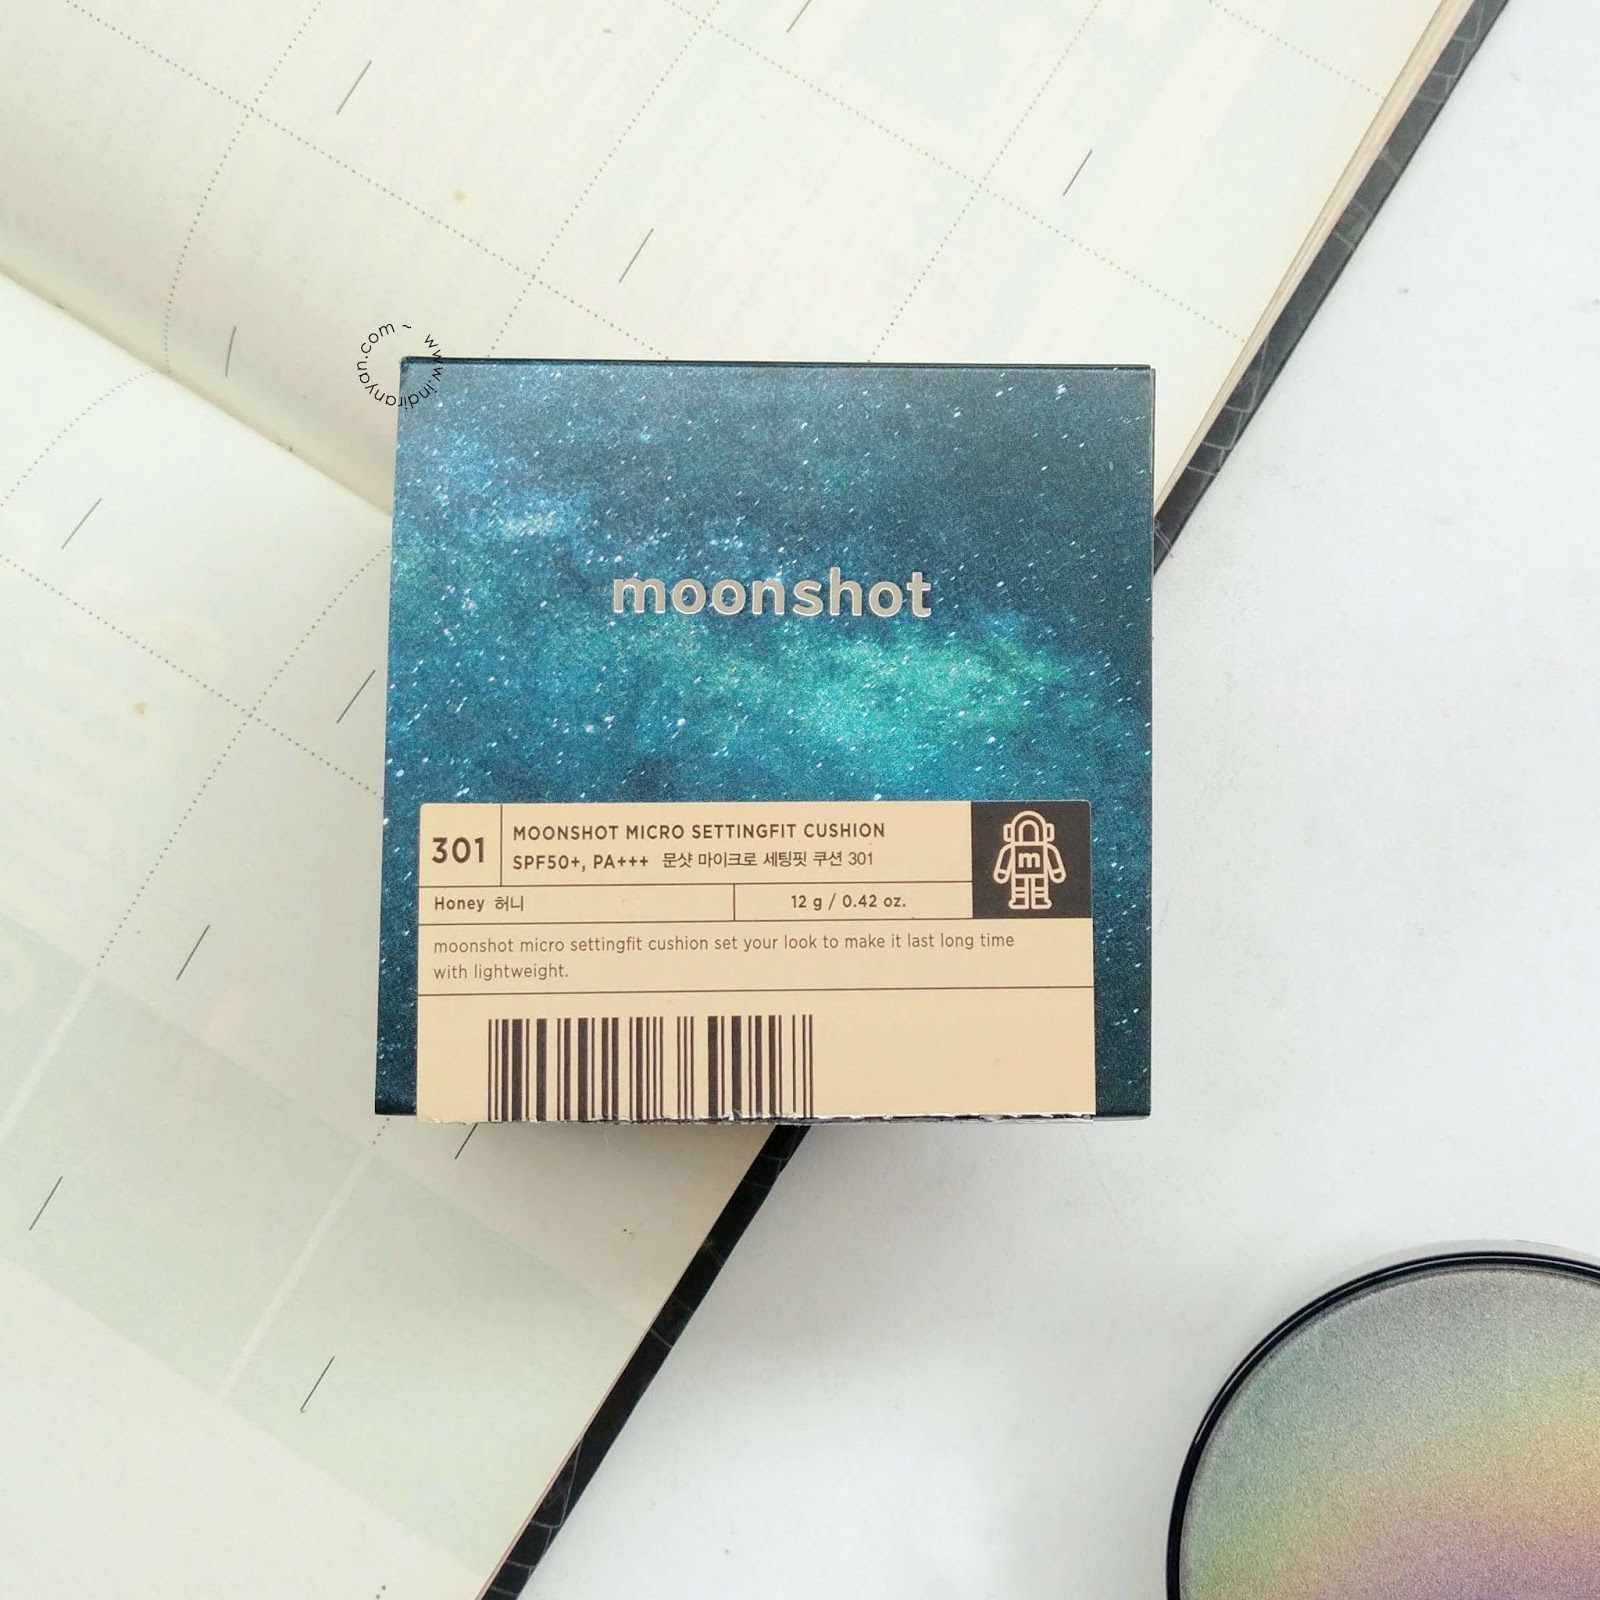 moonshot-micro-settingfit-cushion